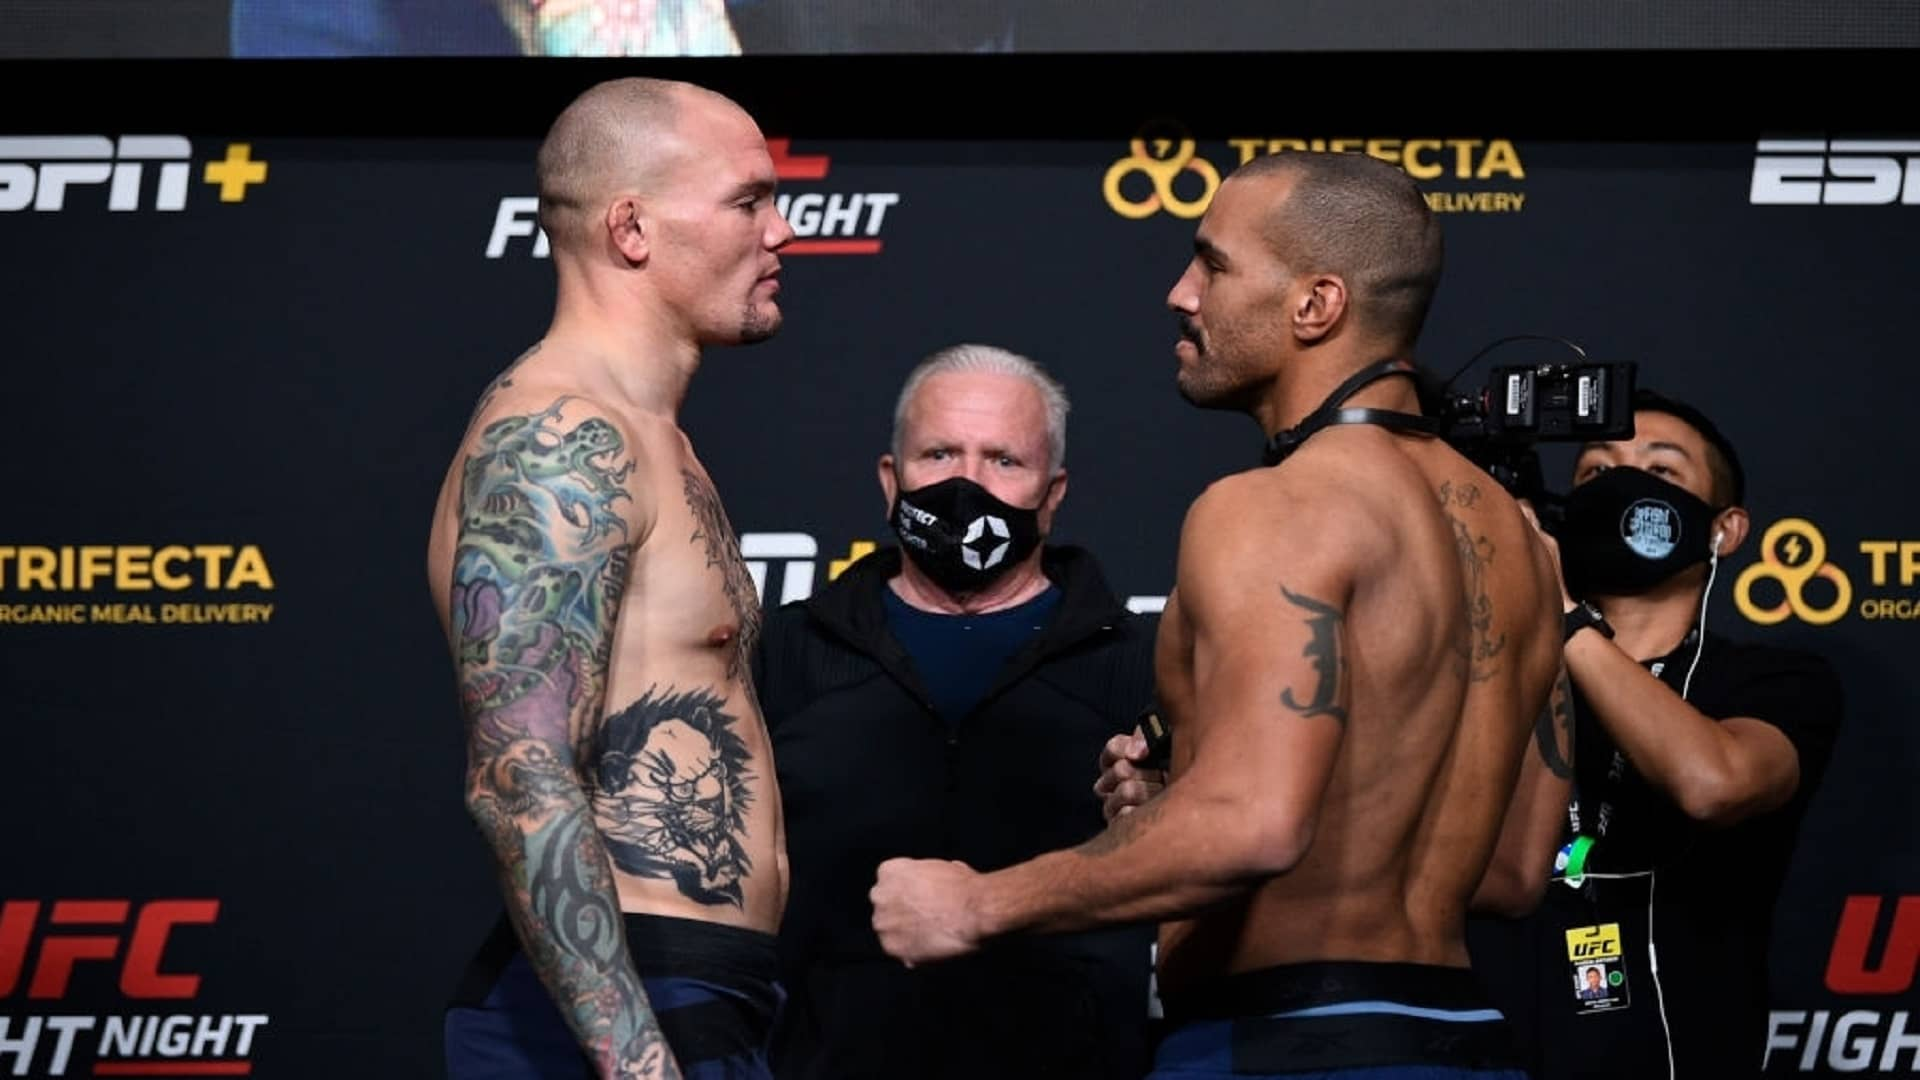 https://lockerroom.in/blog/view/UFC-Vegas-15-Smith-Clark-India